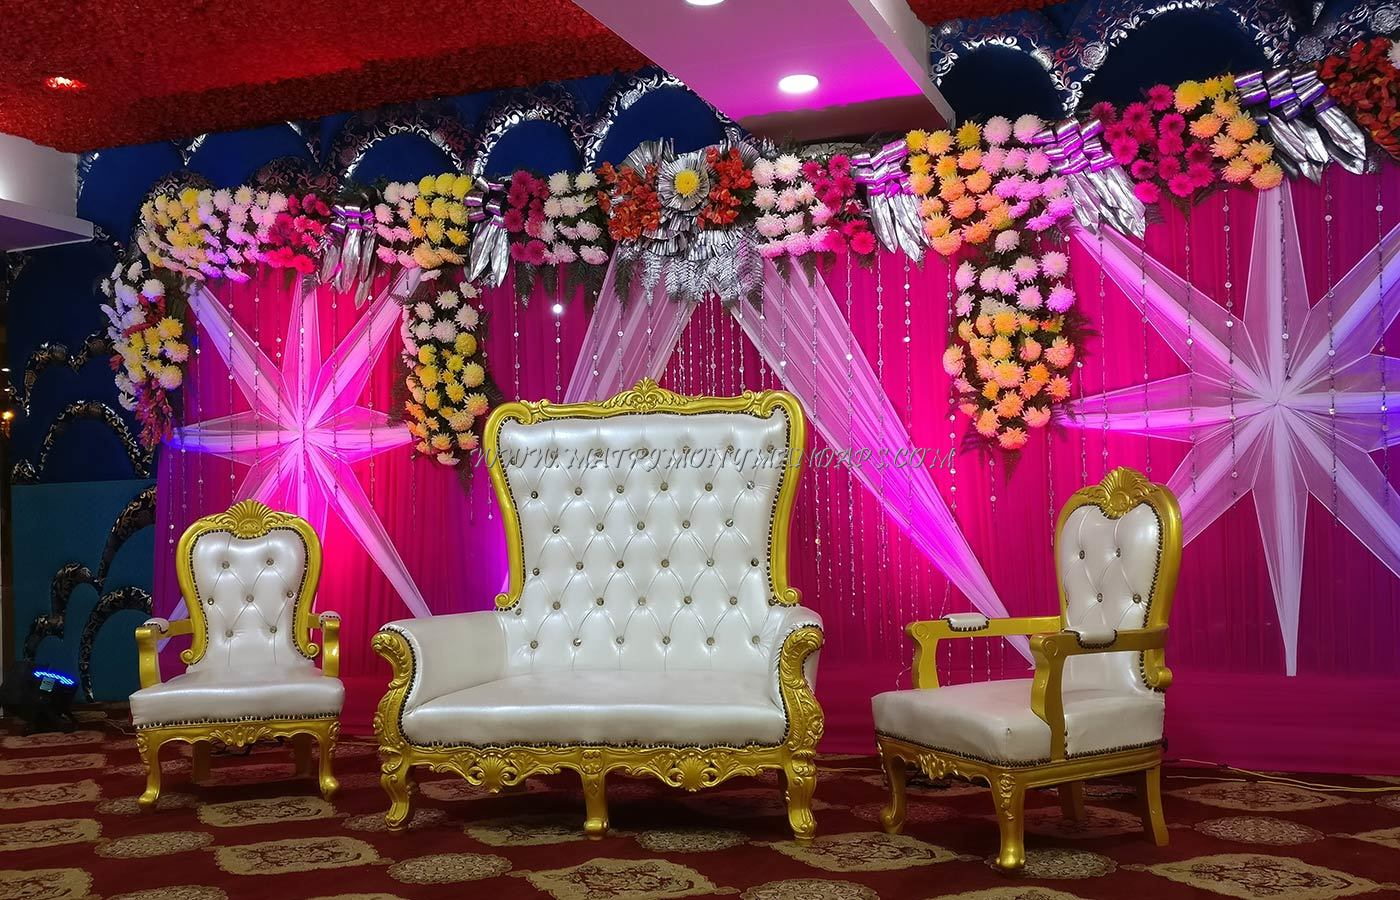 Find More Banquet Halls in Sahibabad